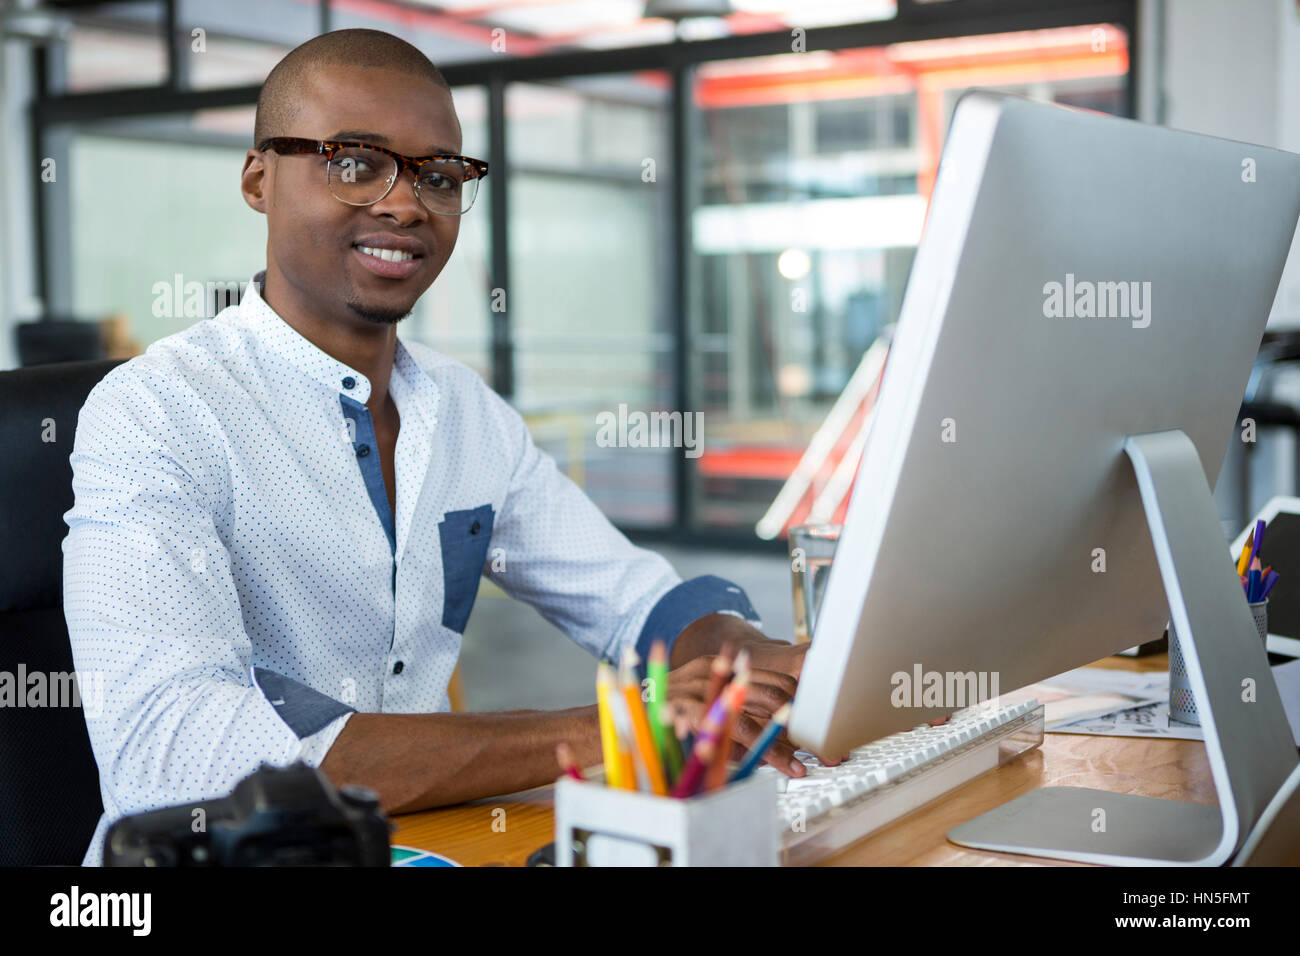 Portrait of graphic designer working at desk in office - Stock Image